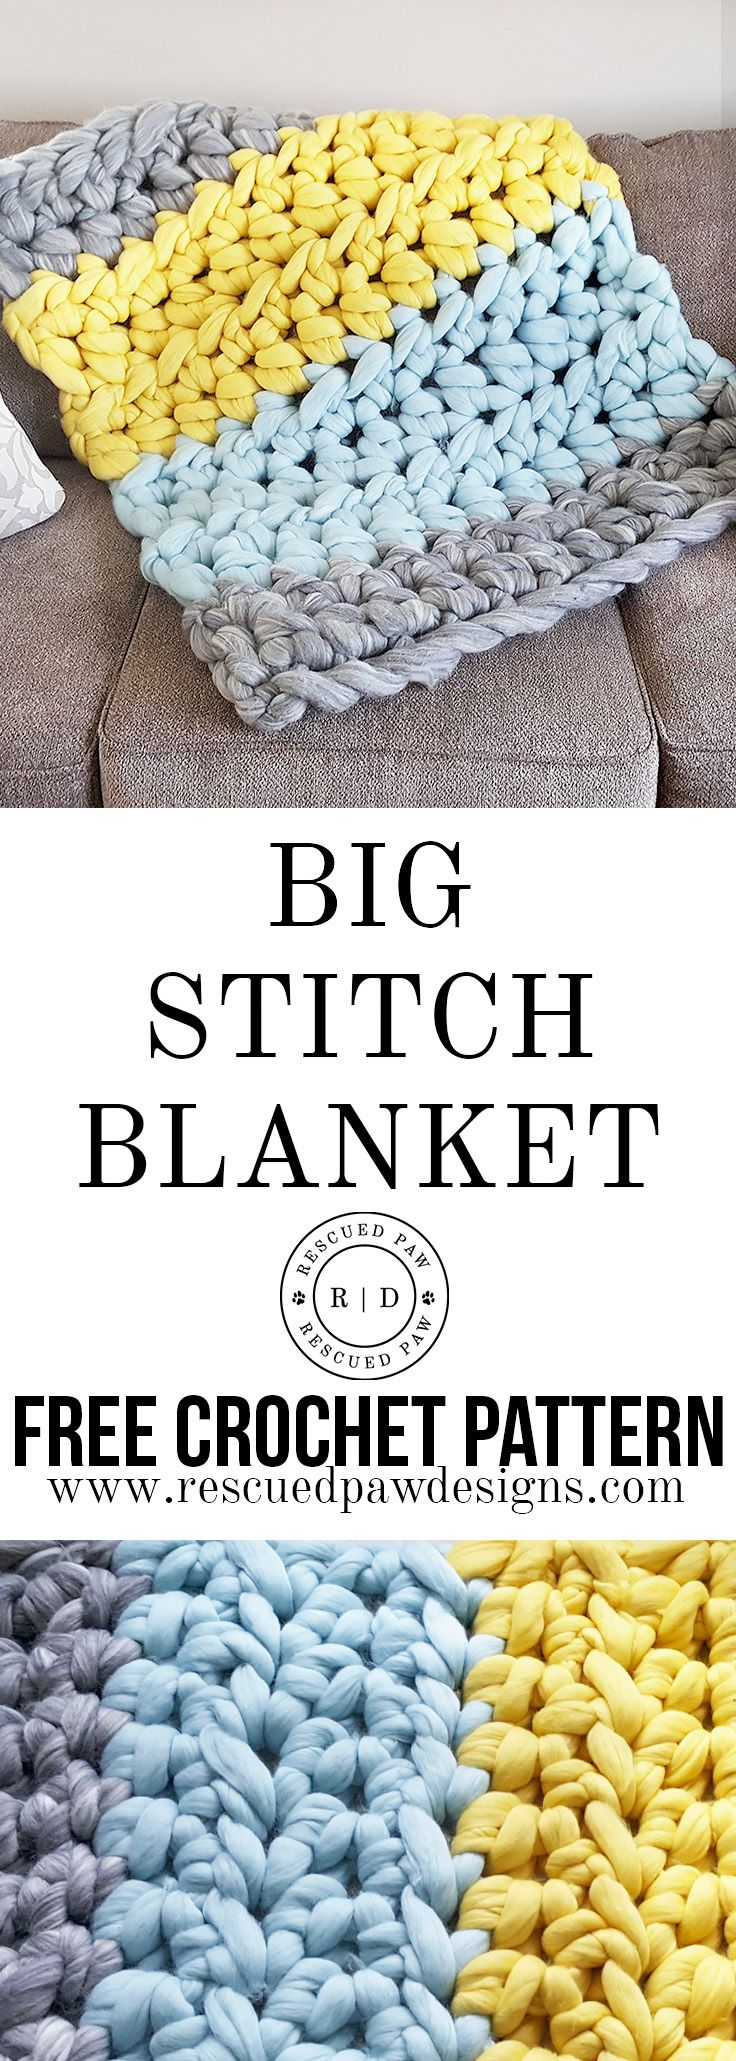 BIG STITCH EXTREME CROCHET BLANKET PATTERN - FREE Pattern! | Manta ...